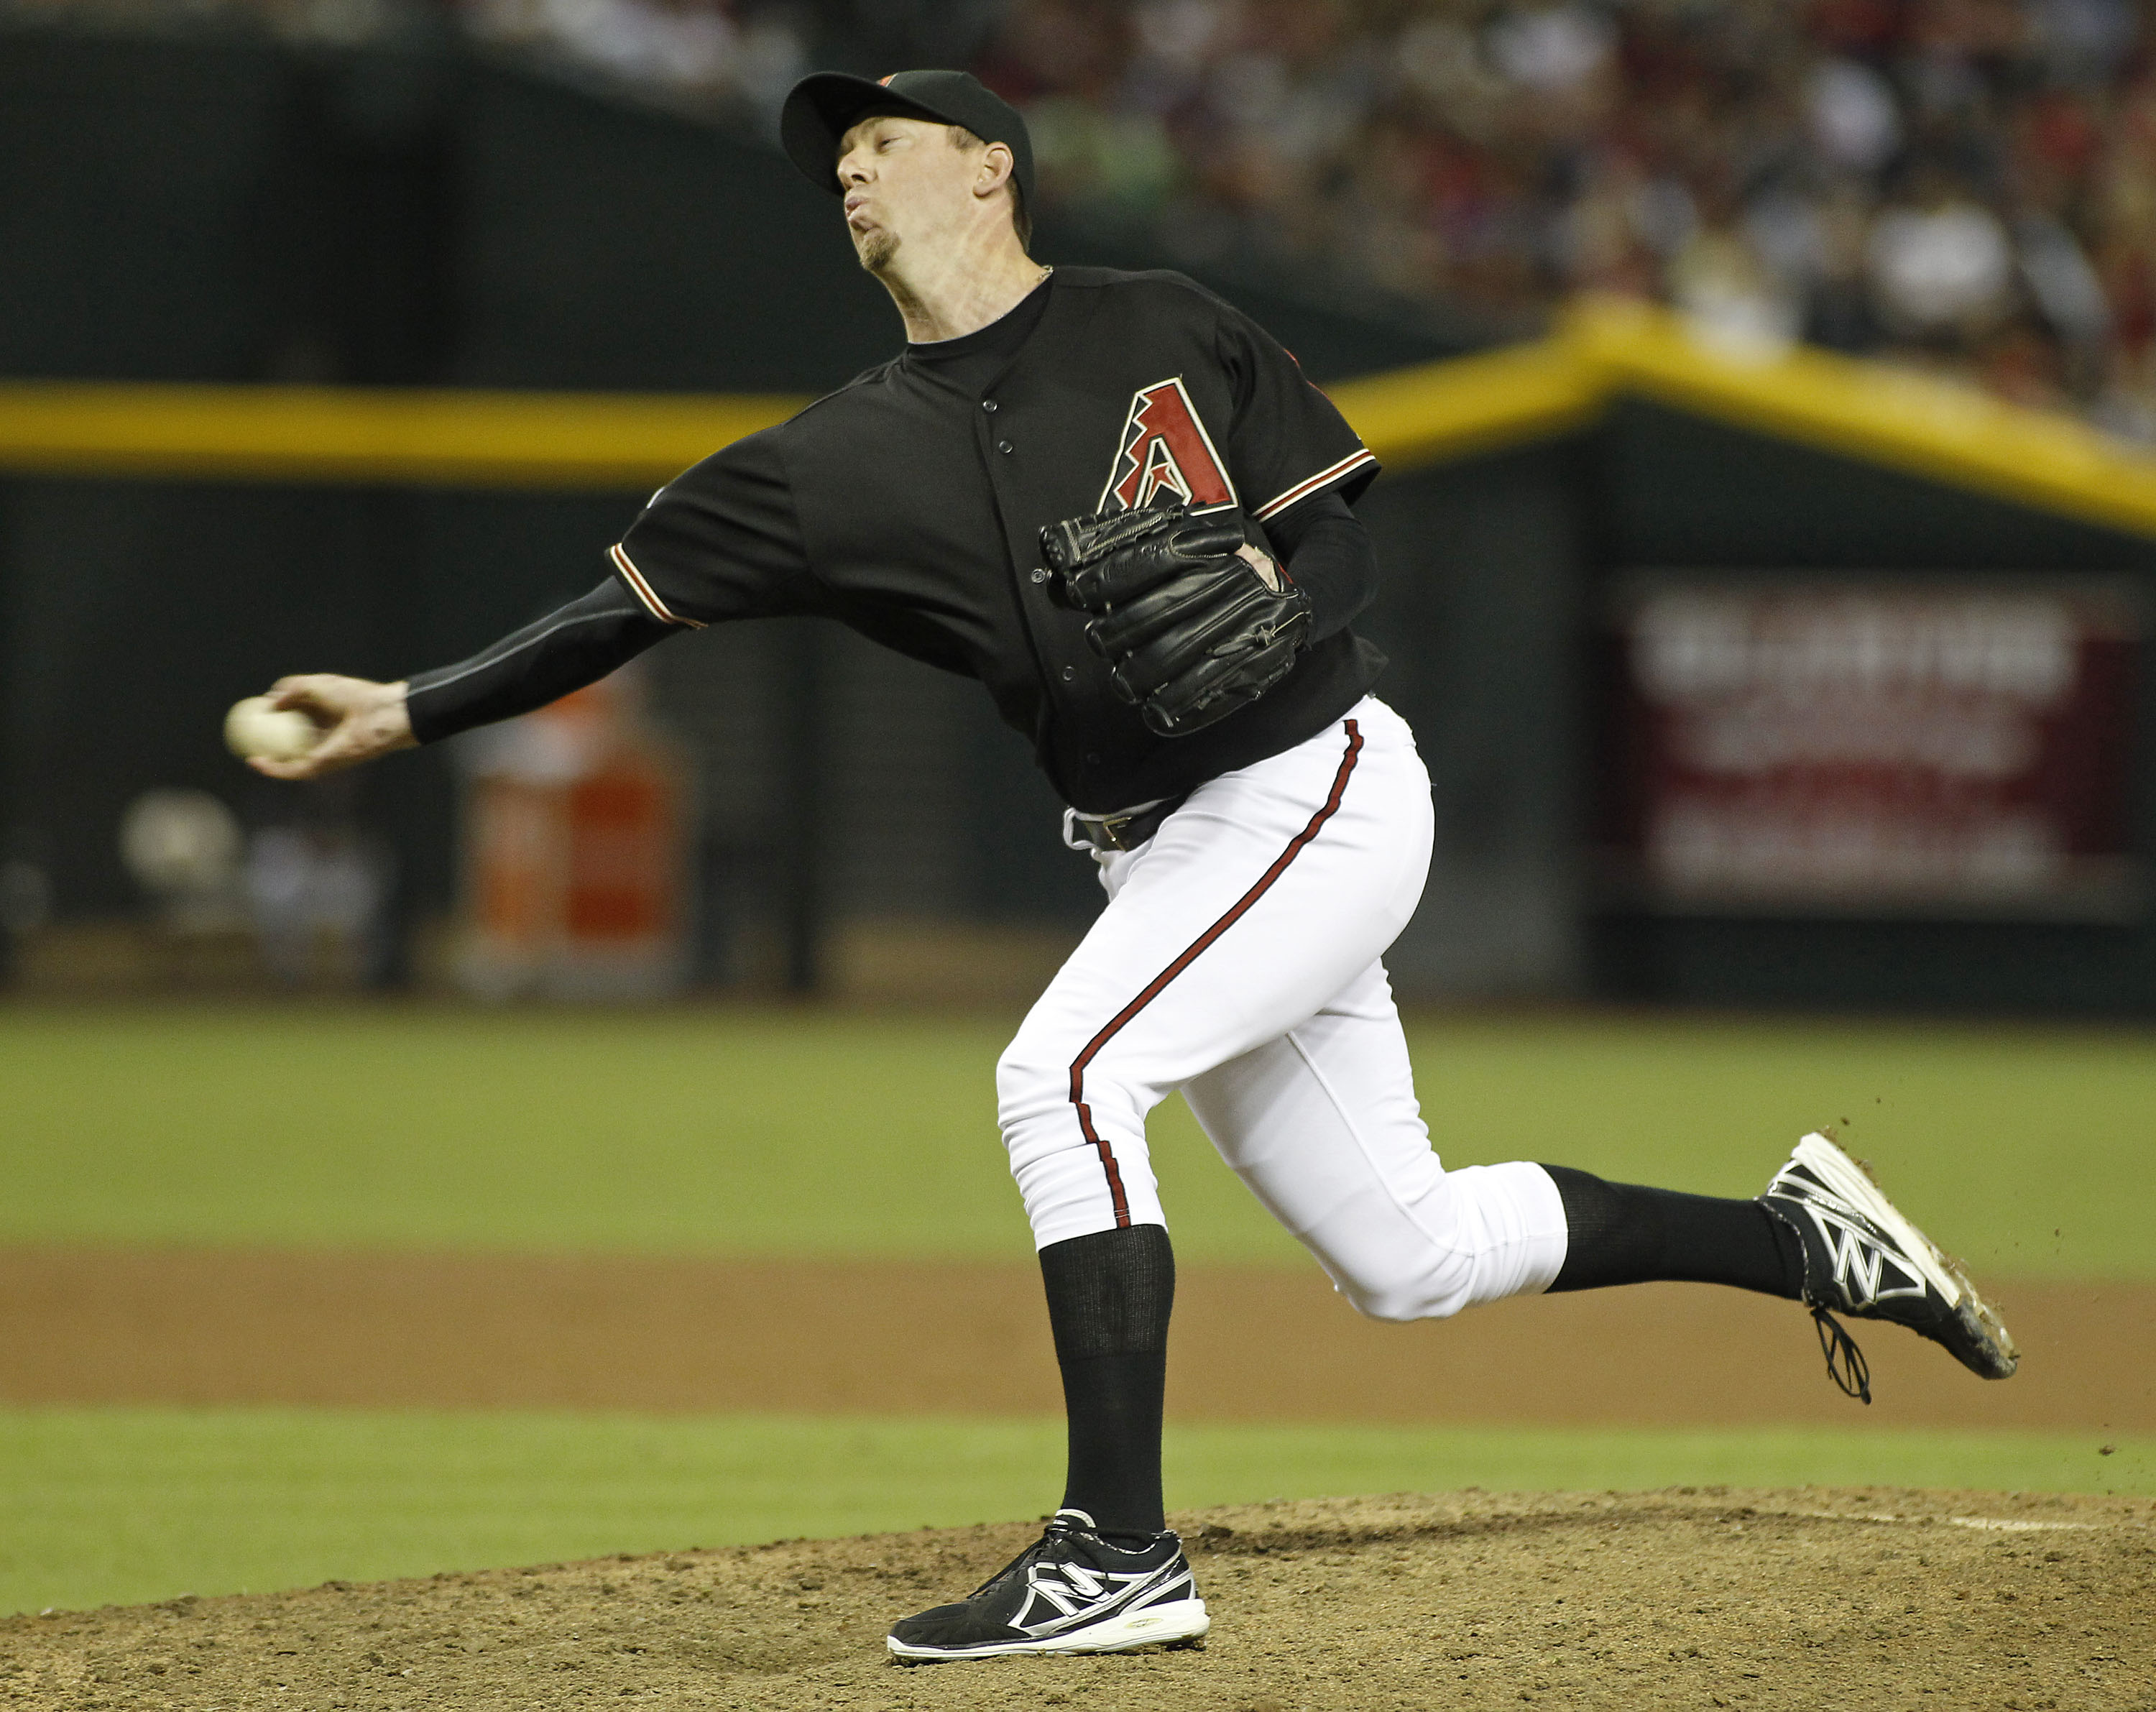 Arizona Diamondbacks pitcher Brad Ziegler delivers to Washington Nationals pinch hitter Zach Walters during the ninth inning of a baseball game on Saturday, Sept. 28, 2013, in Phoenix